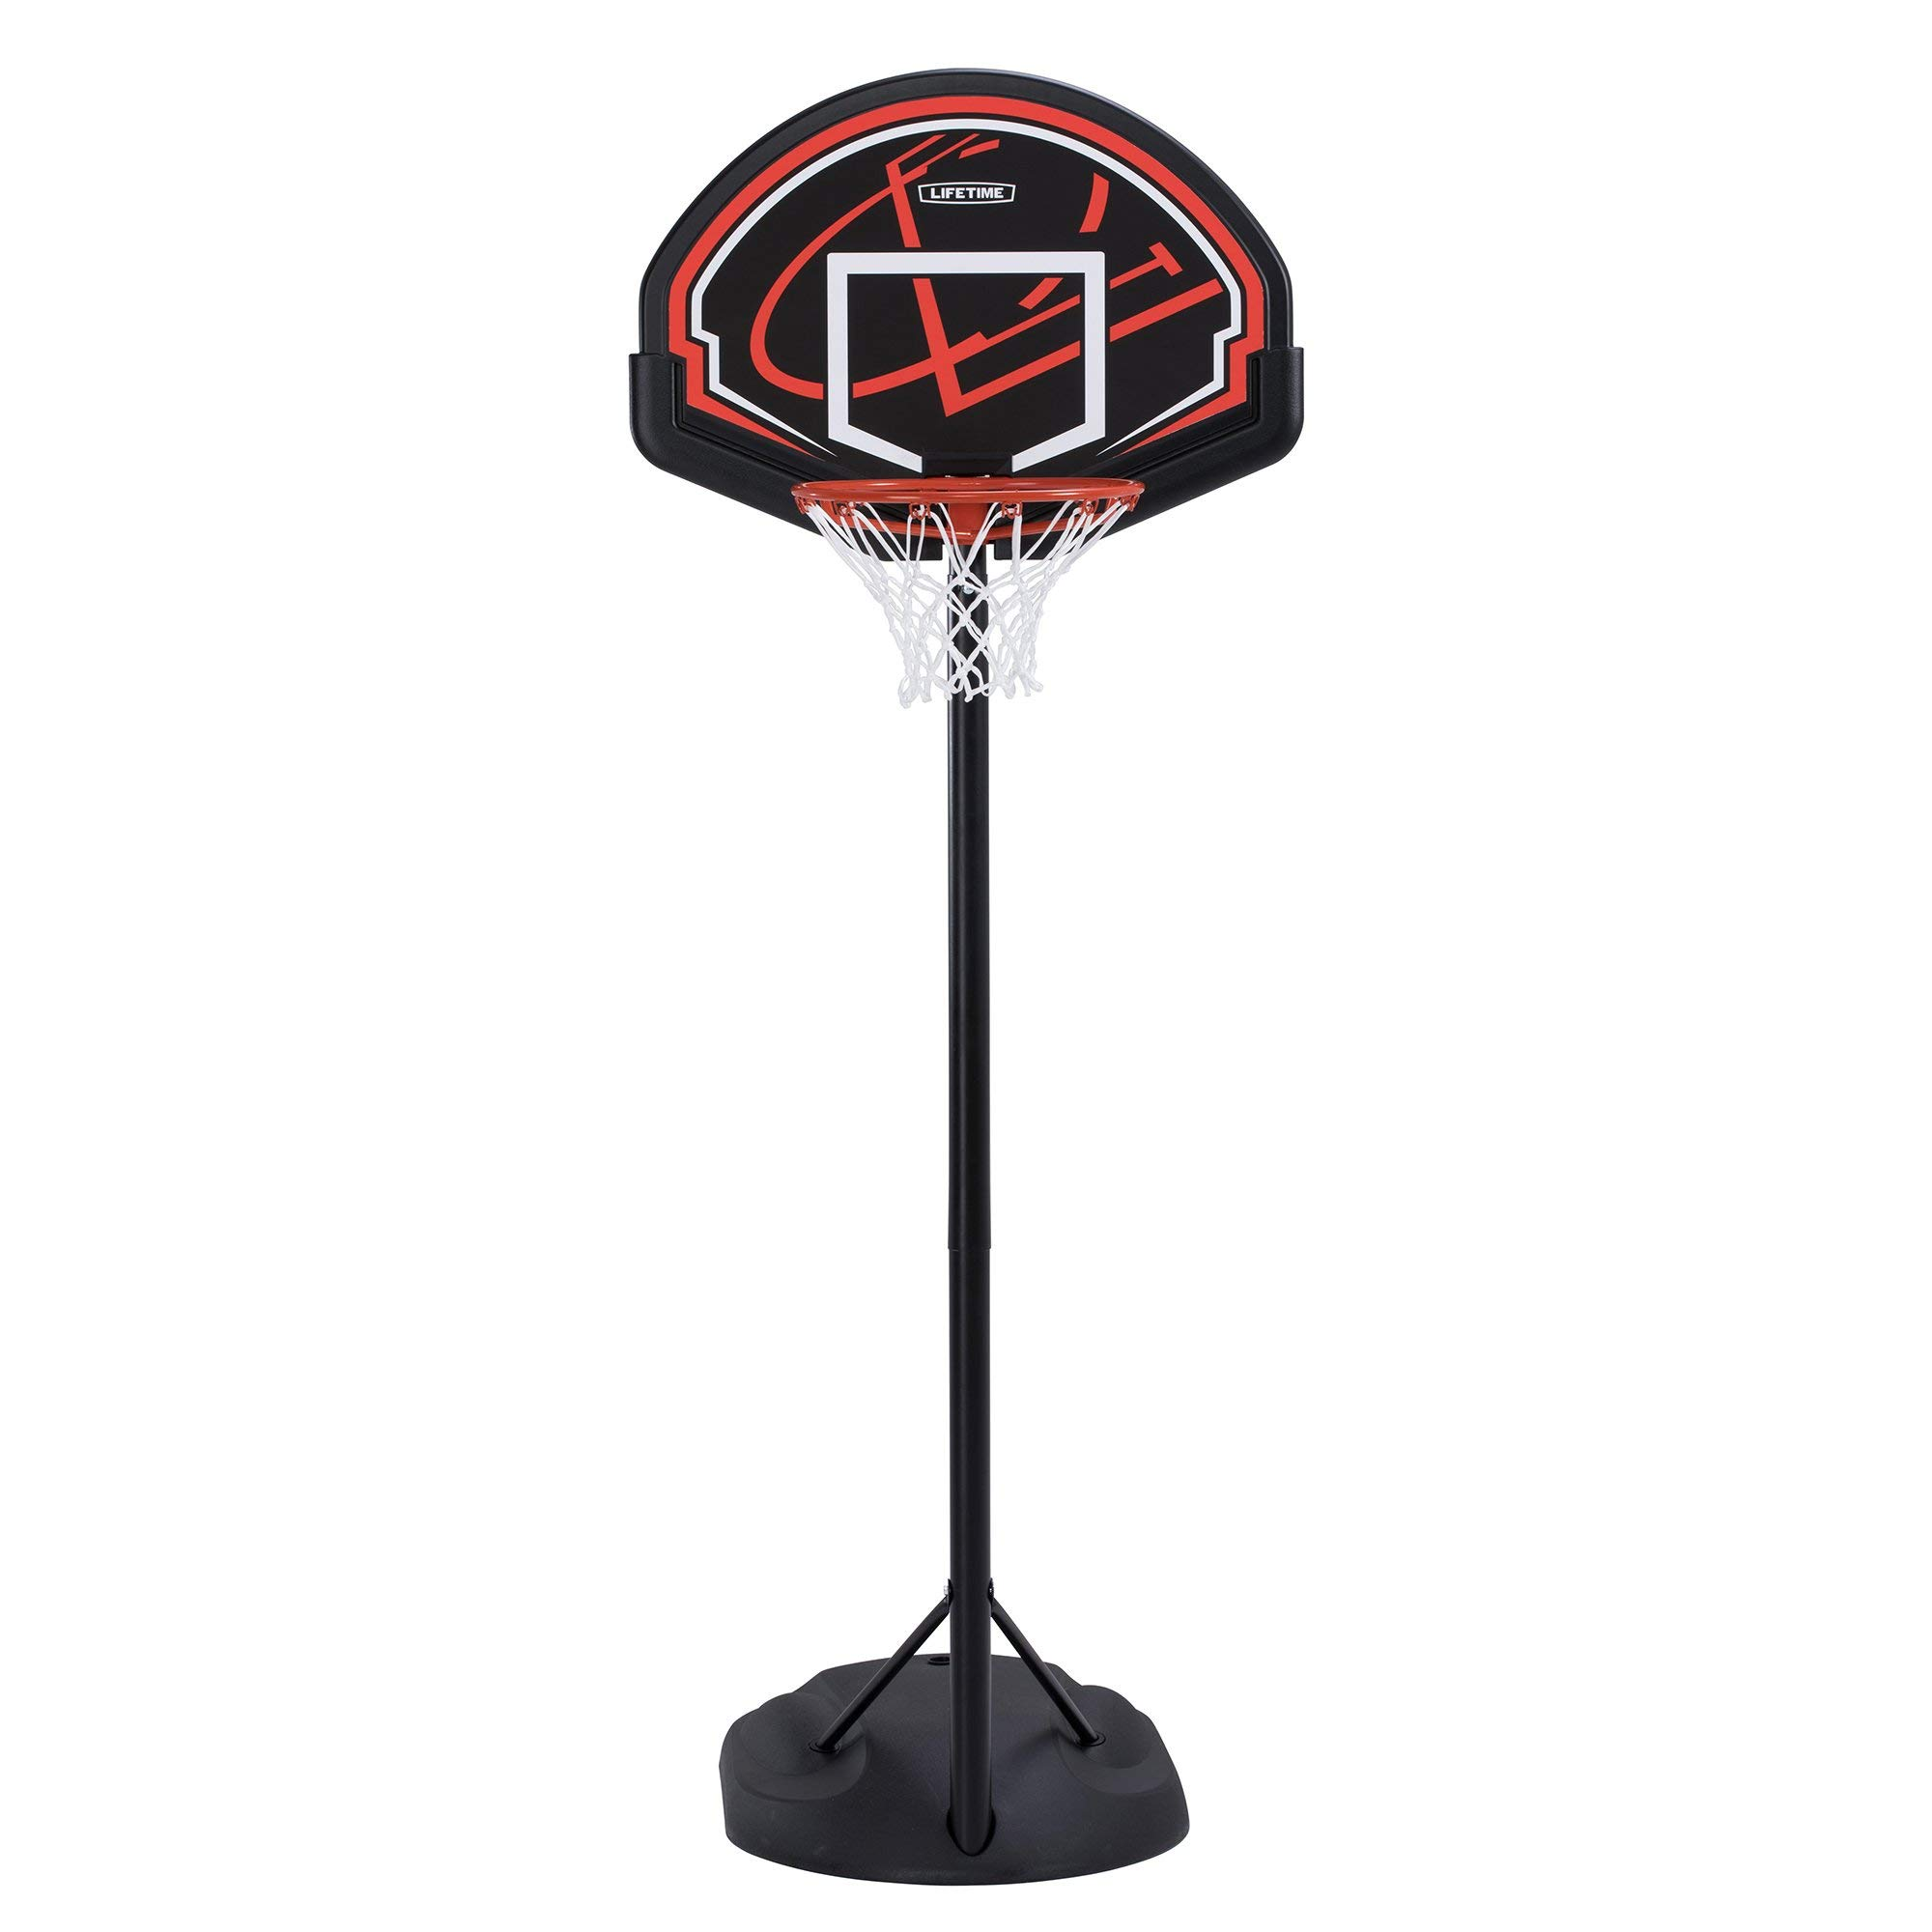 Lifetime 90022 Youth Height Adjustable Portable Basketball System (Certified Refurbished)